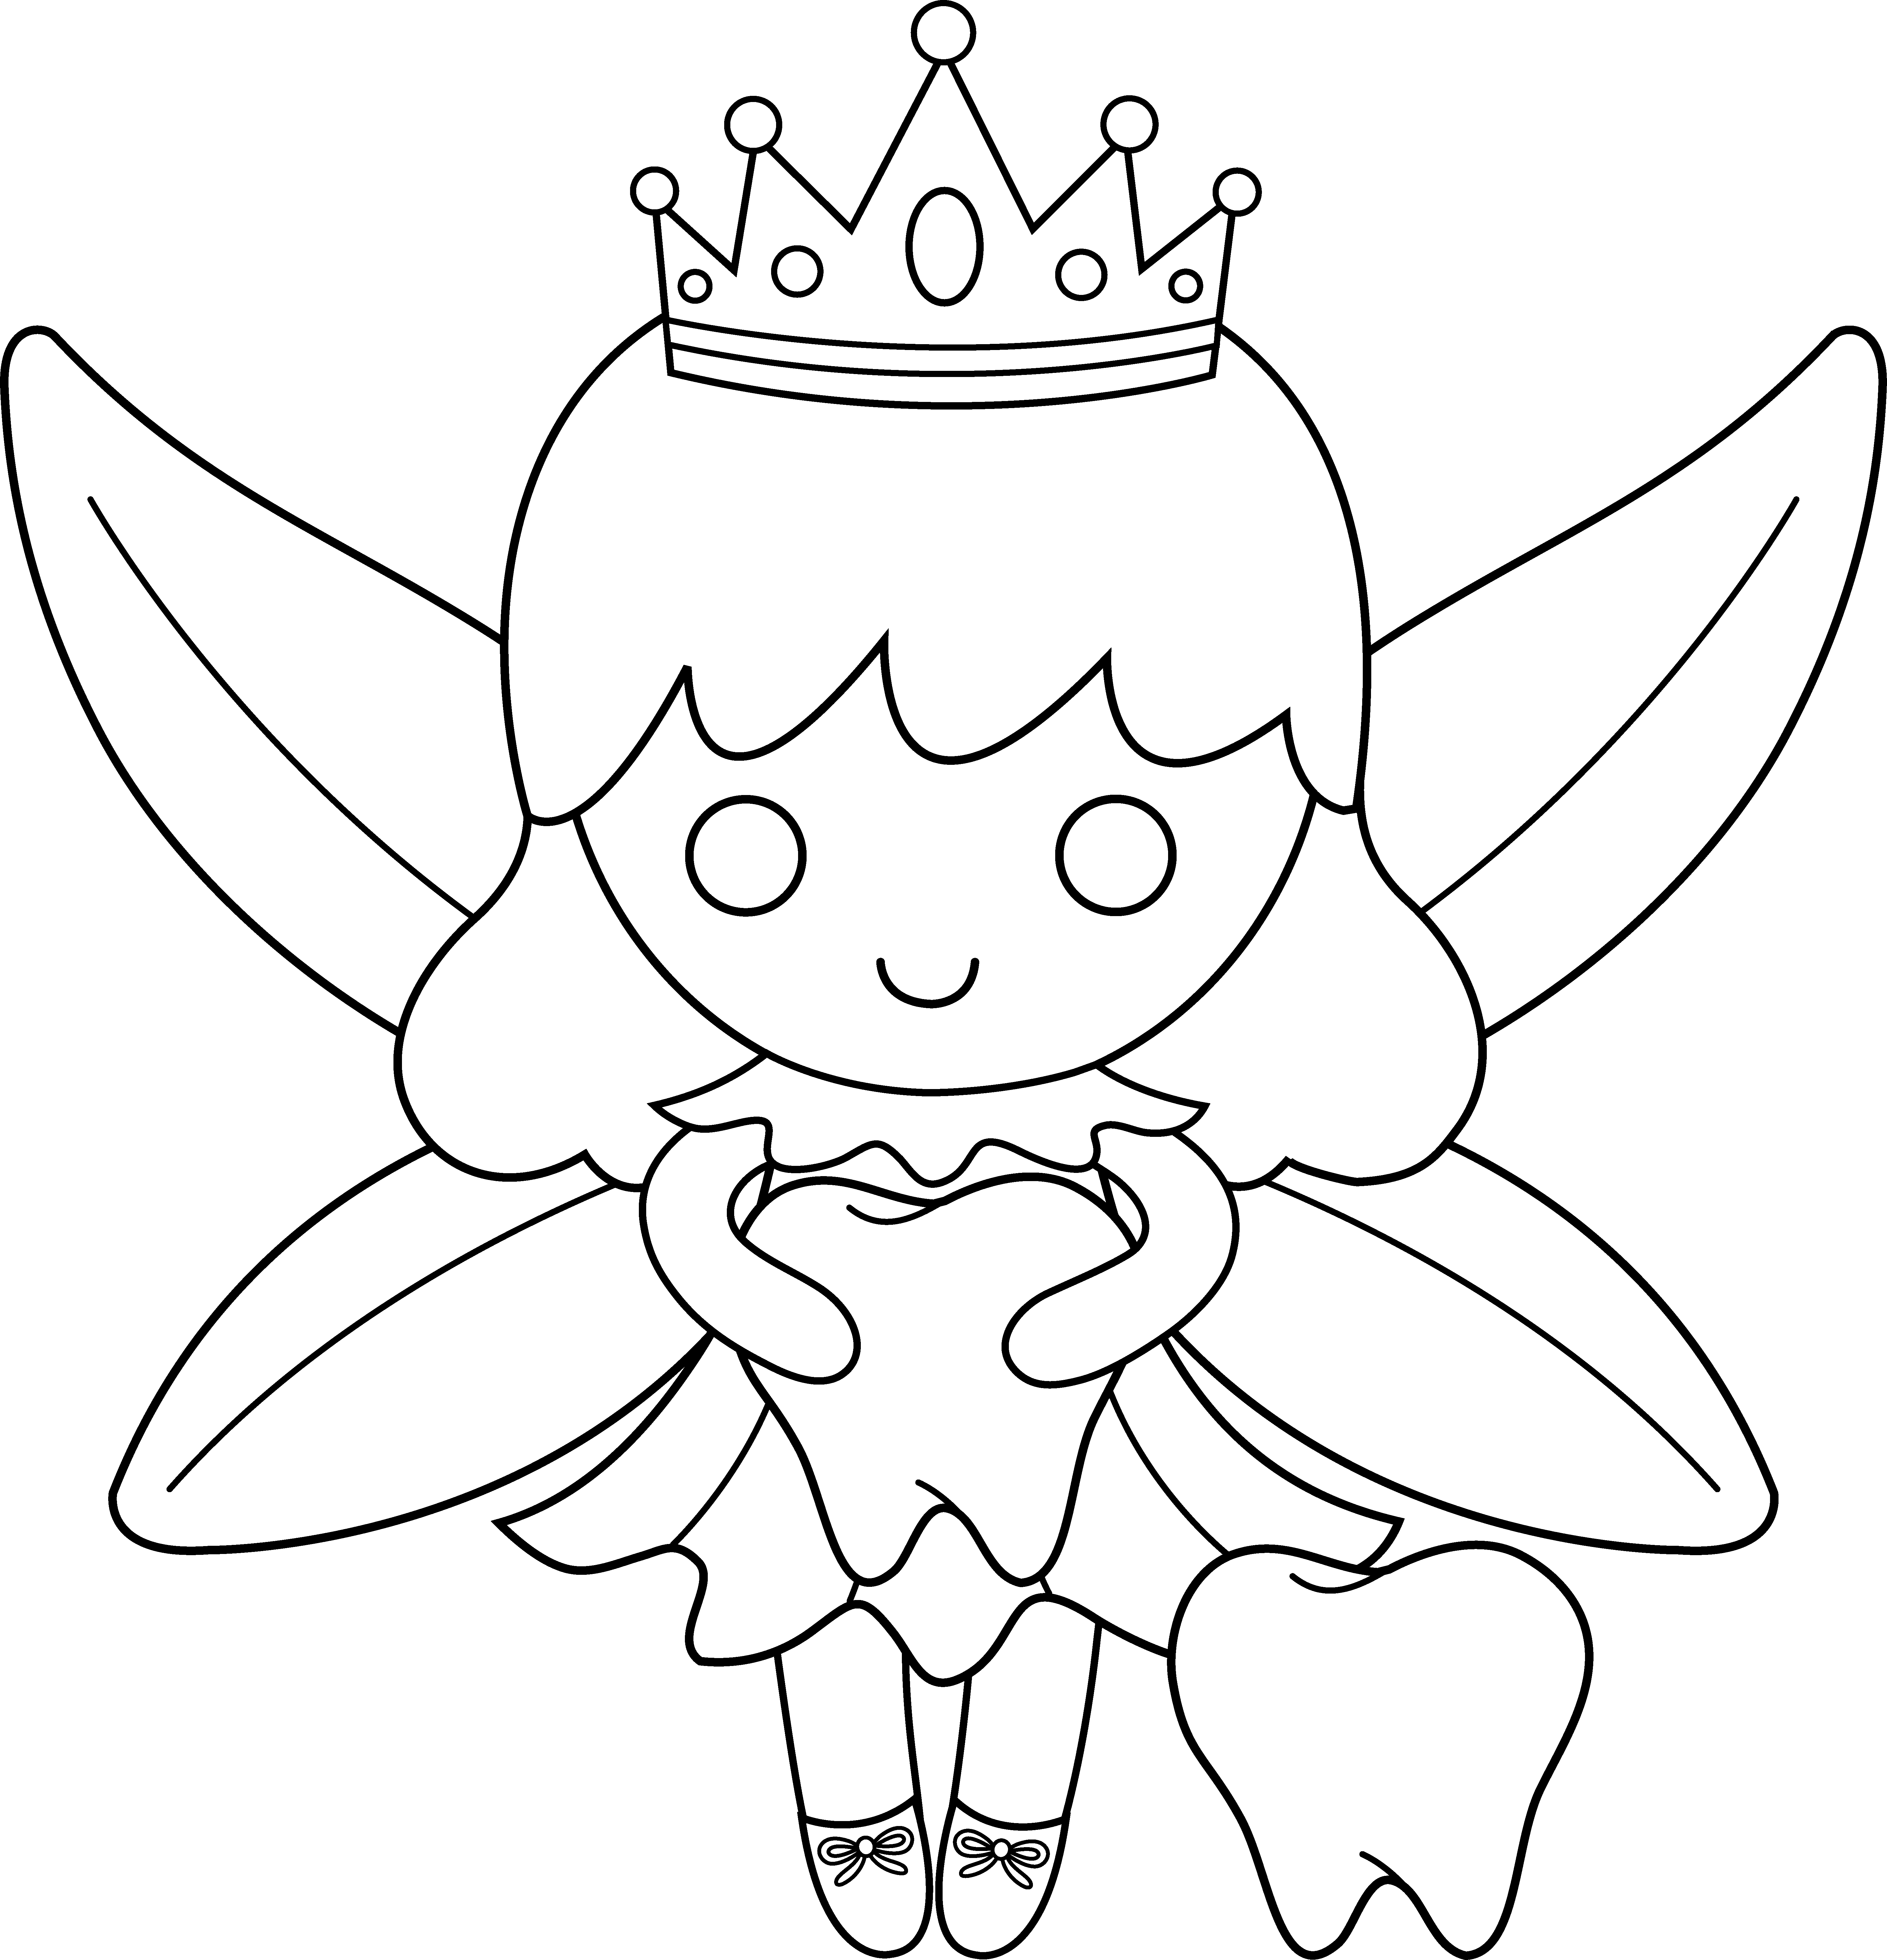 tooth fairy coloring pictures tooth fairy coloring pages to download and print for free pictures coloring tooth fairy